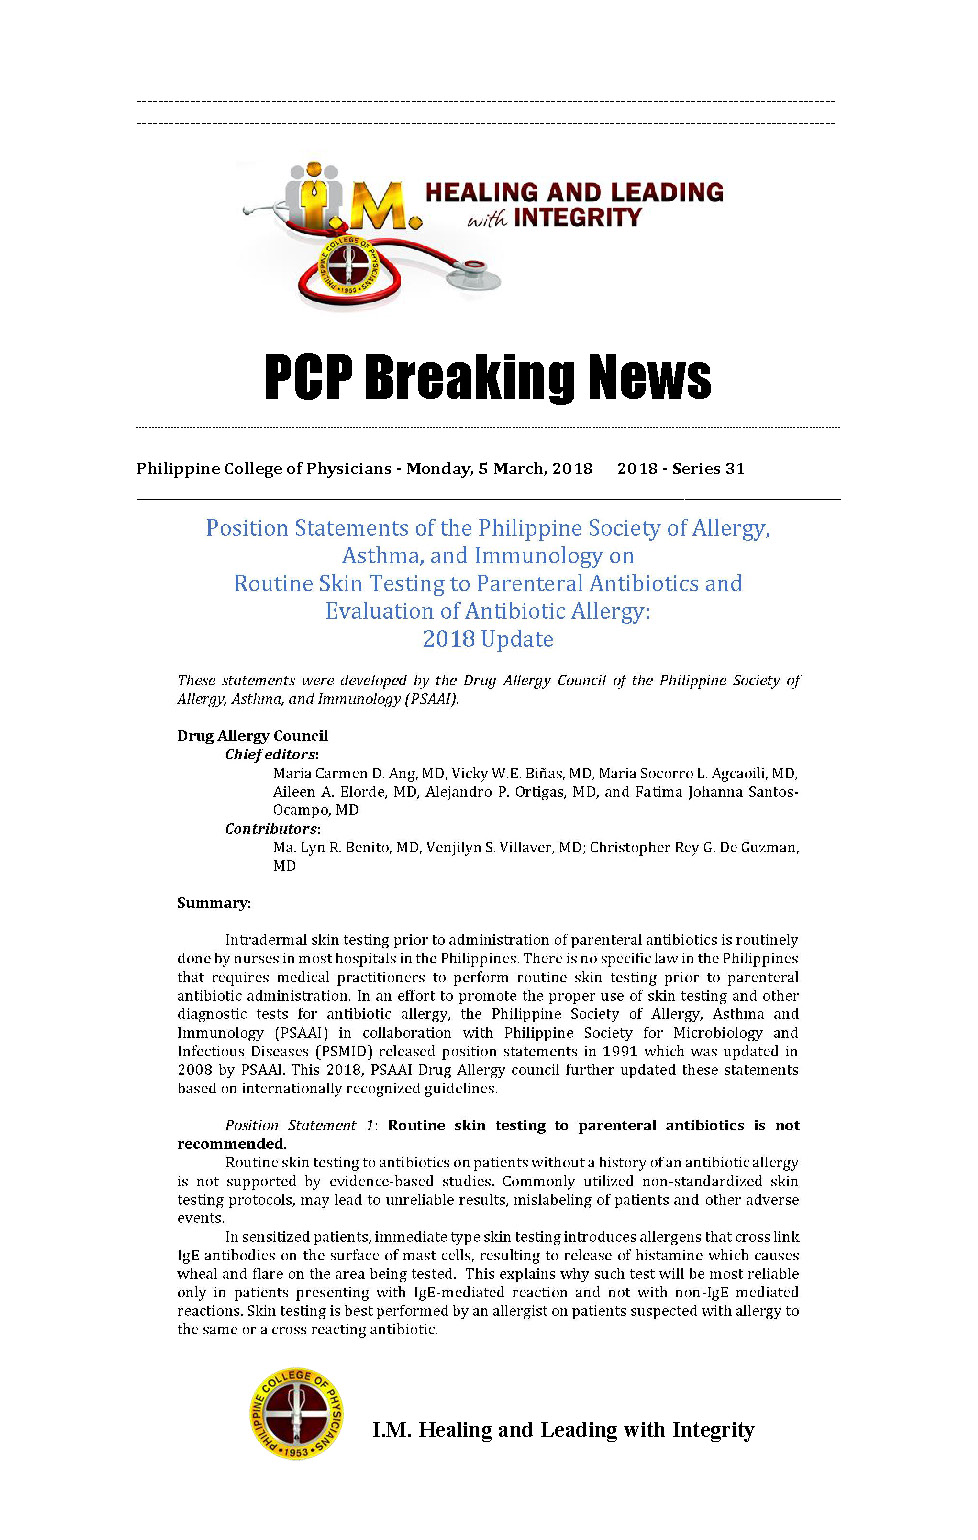 PCP Breaking News Position Statement of PSAAI Page 1